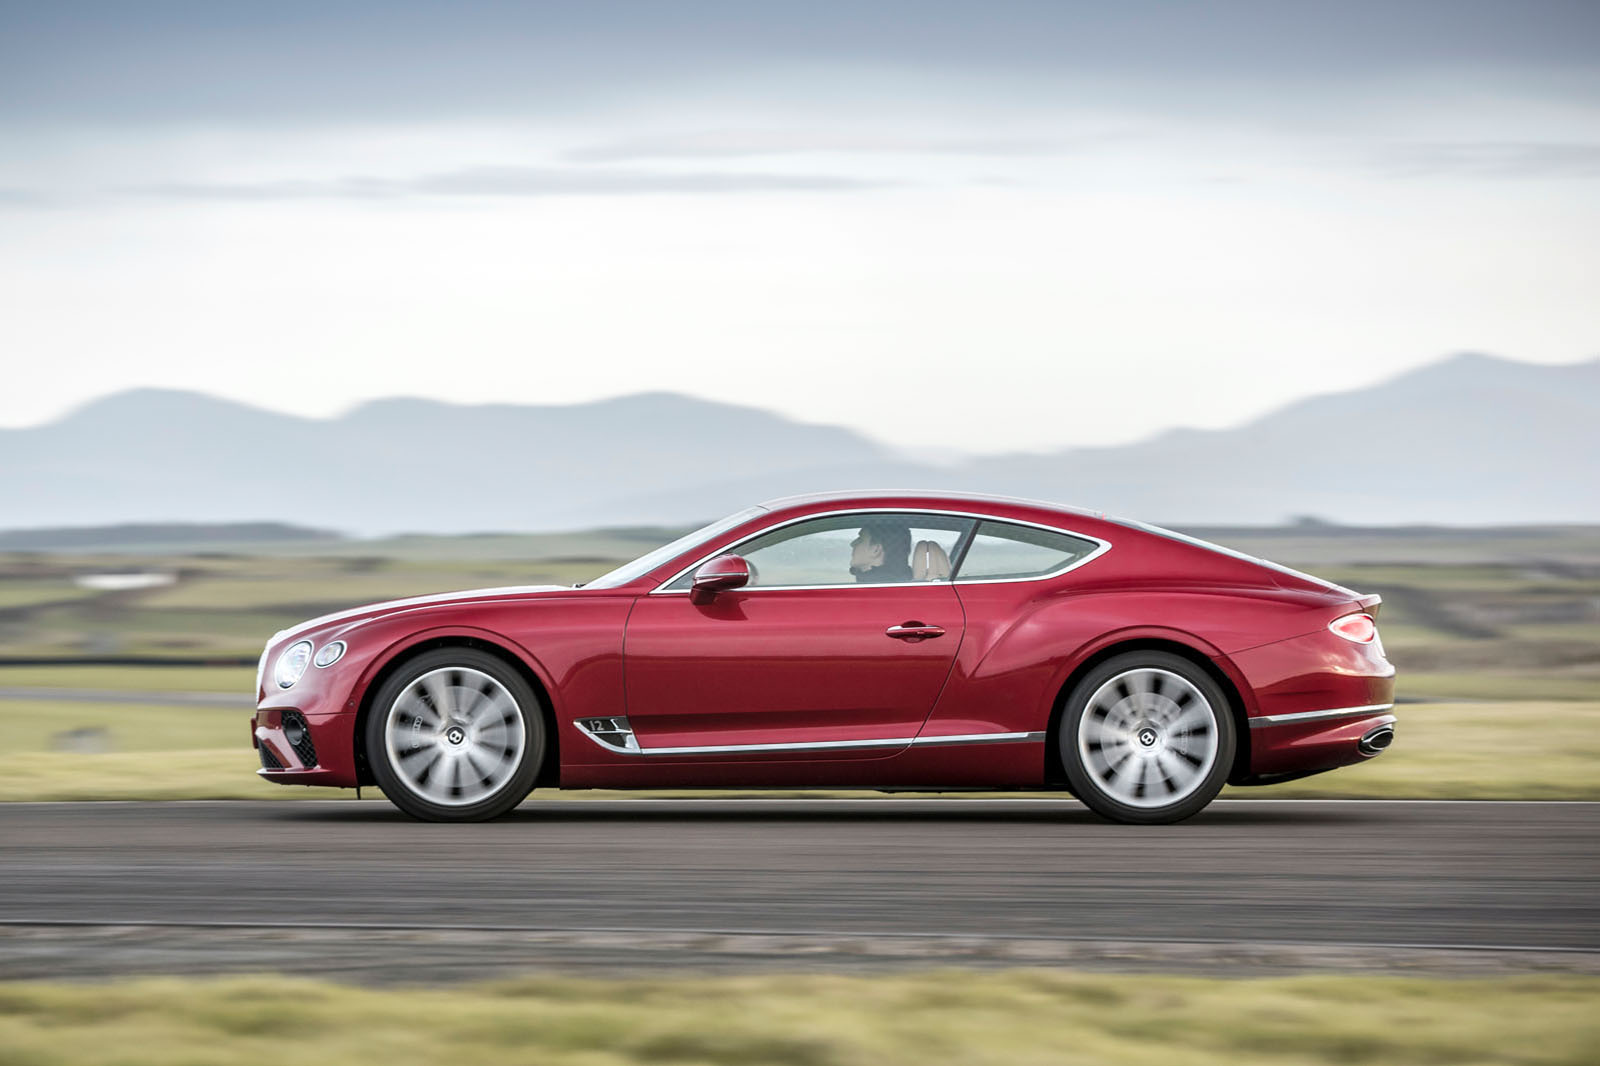 2018 Bentley Continental Gt First Drive Autocar Automotive Circuit Tester 2017 Best Cars Reviews That Still Need Changing So Here We Are In The Features Section Testing An Almost Ready Bentleys W12 Powered 150k Ish Luxury Coup